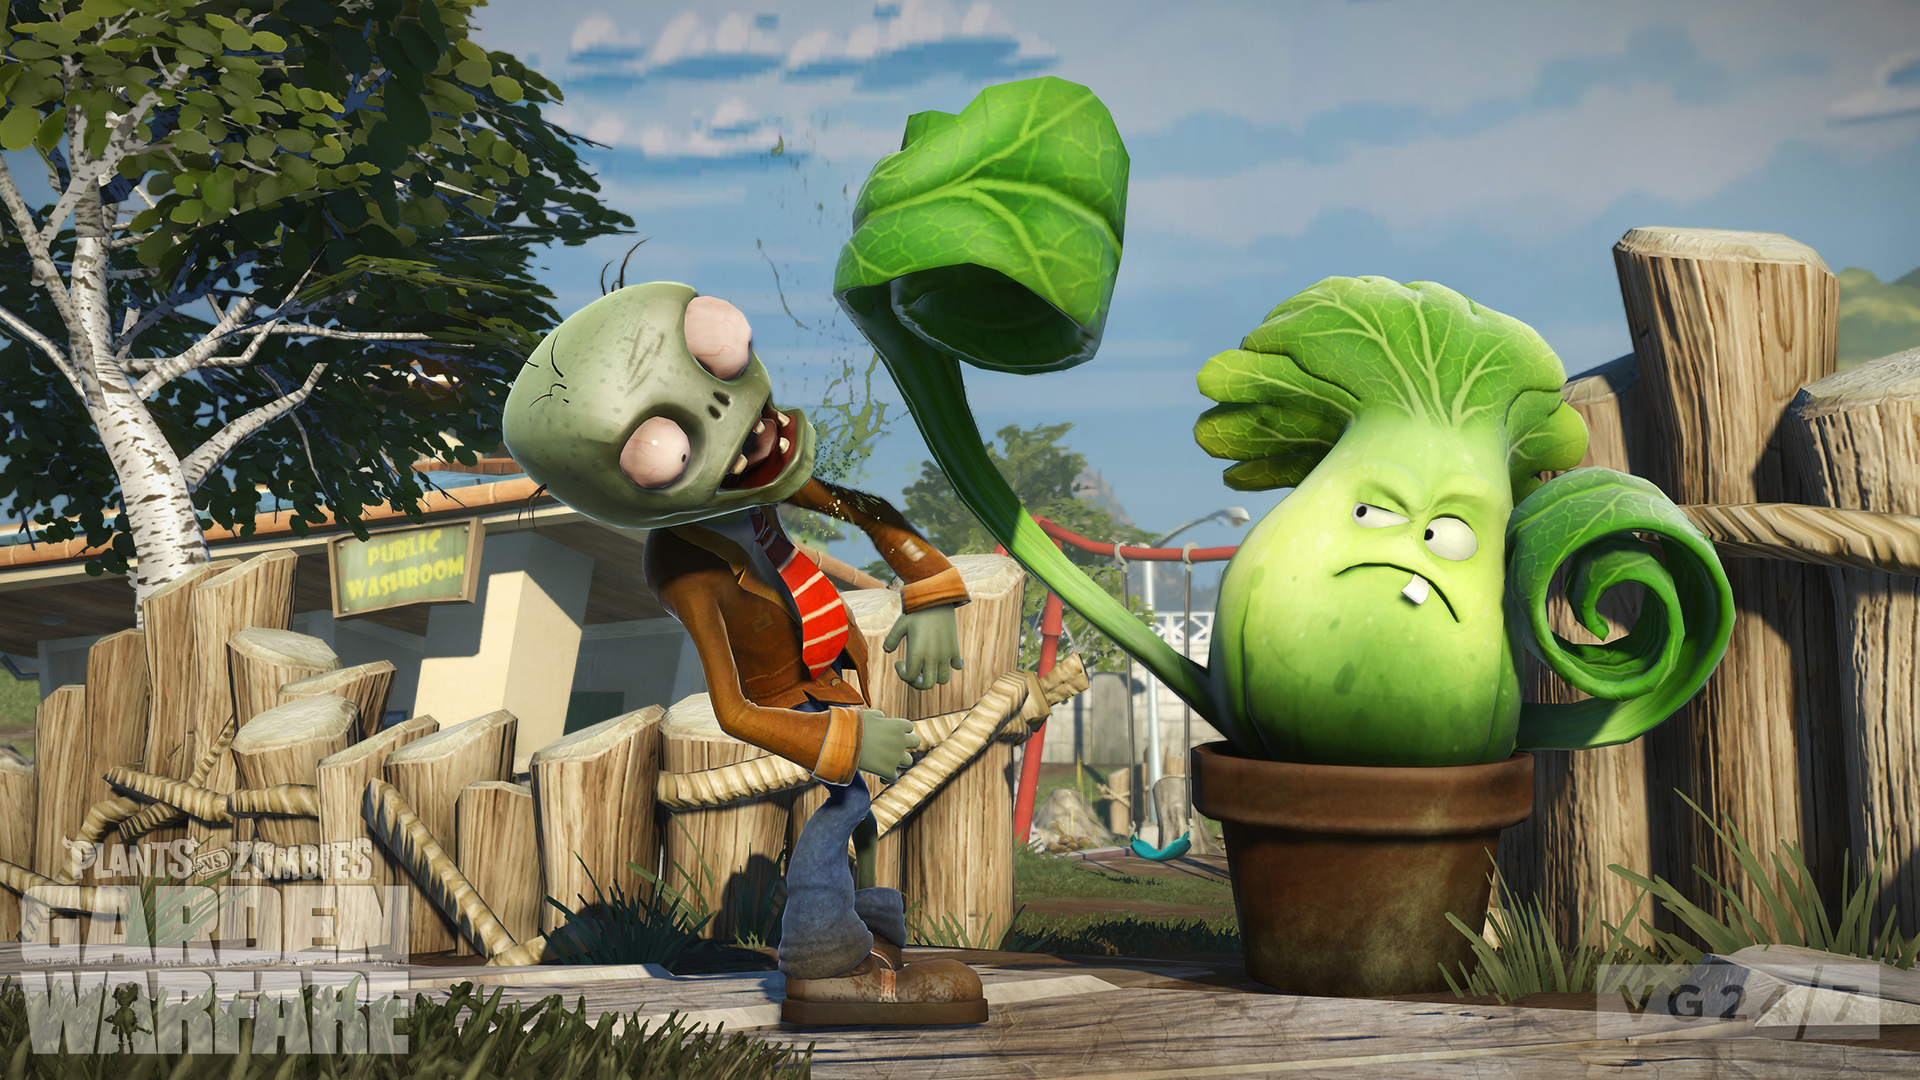 Plants vs zombies garden warfare coming first to xbox one then xbox